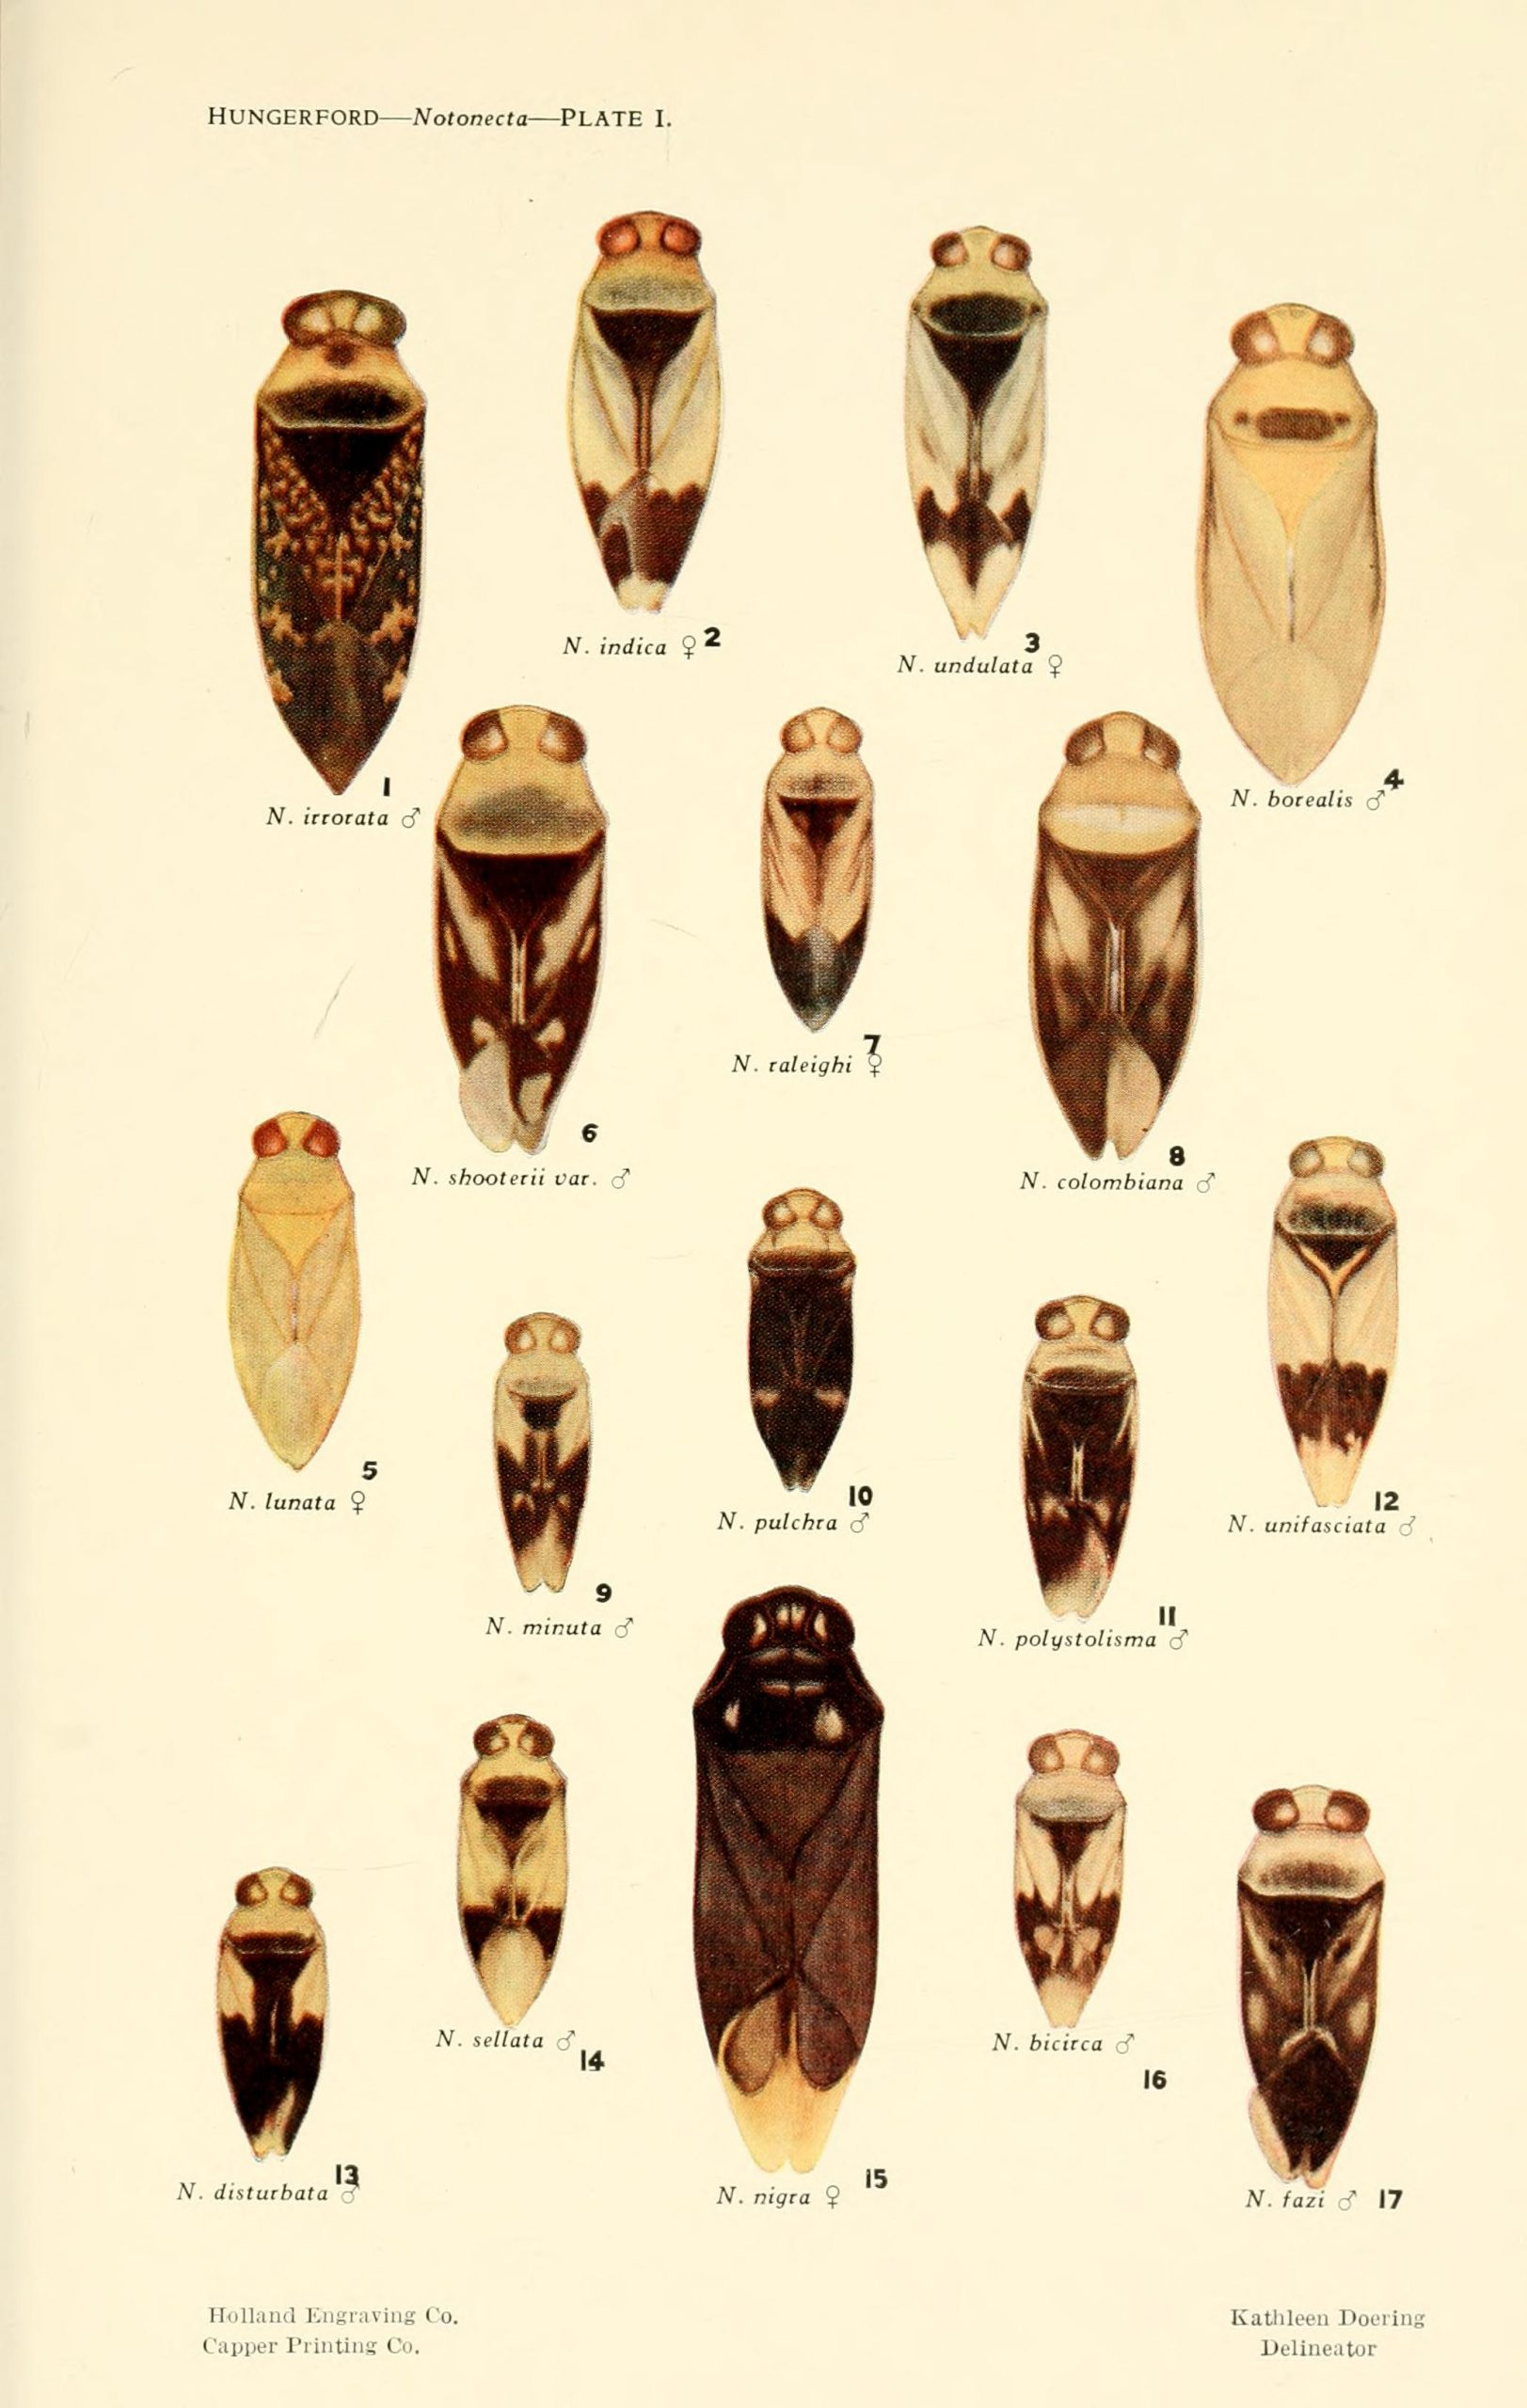 Various species of illustrated insects (Notonecta species)